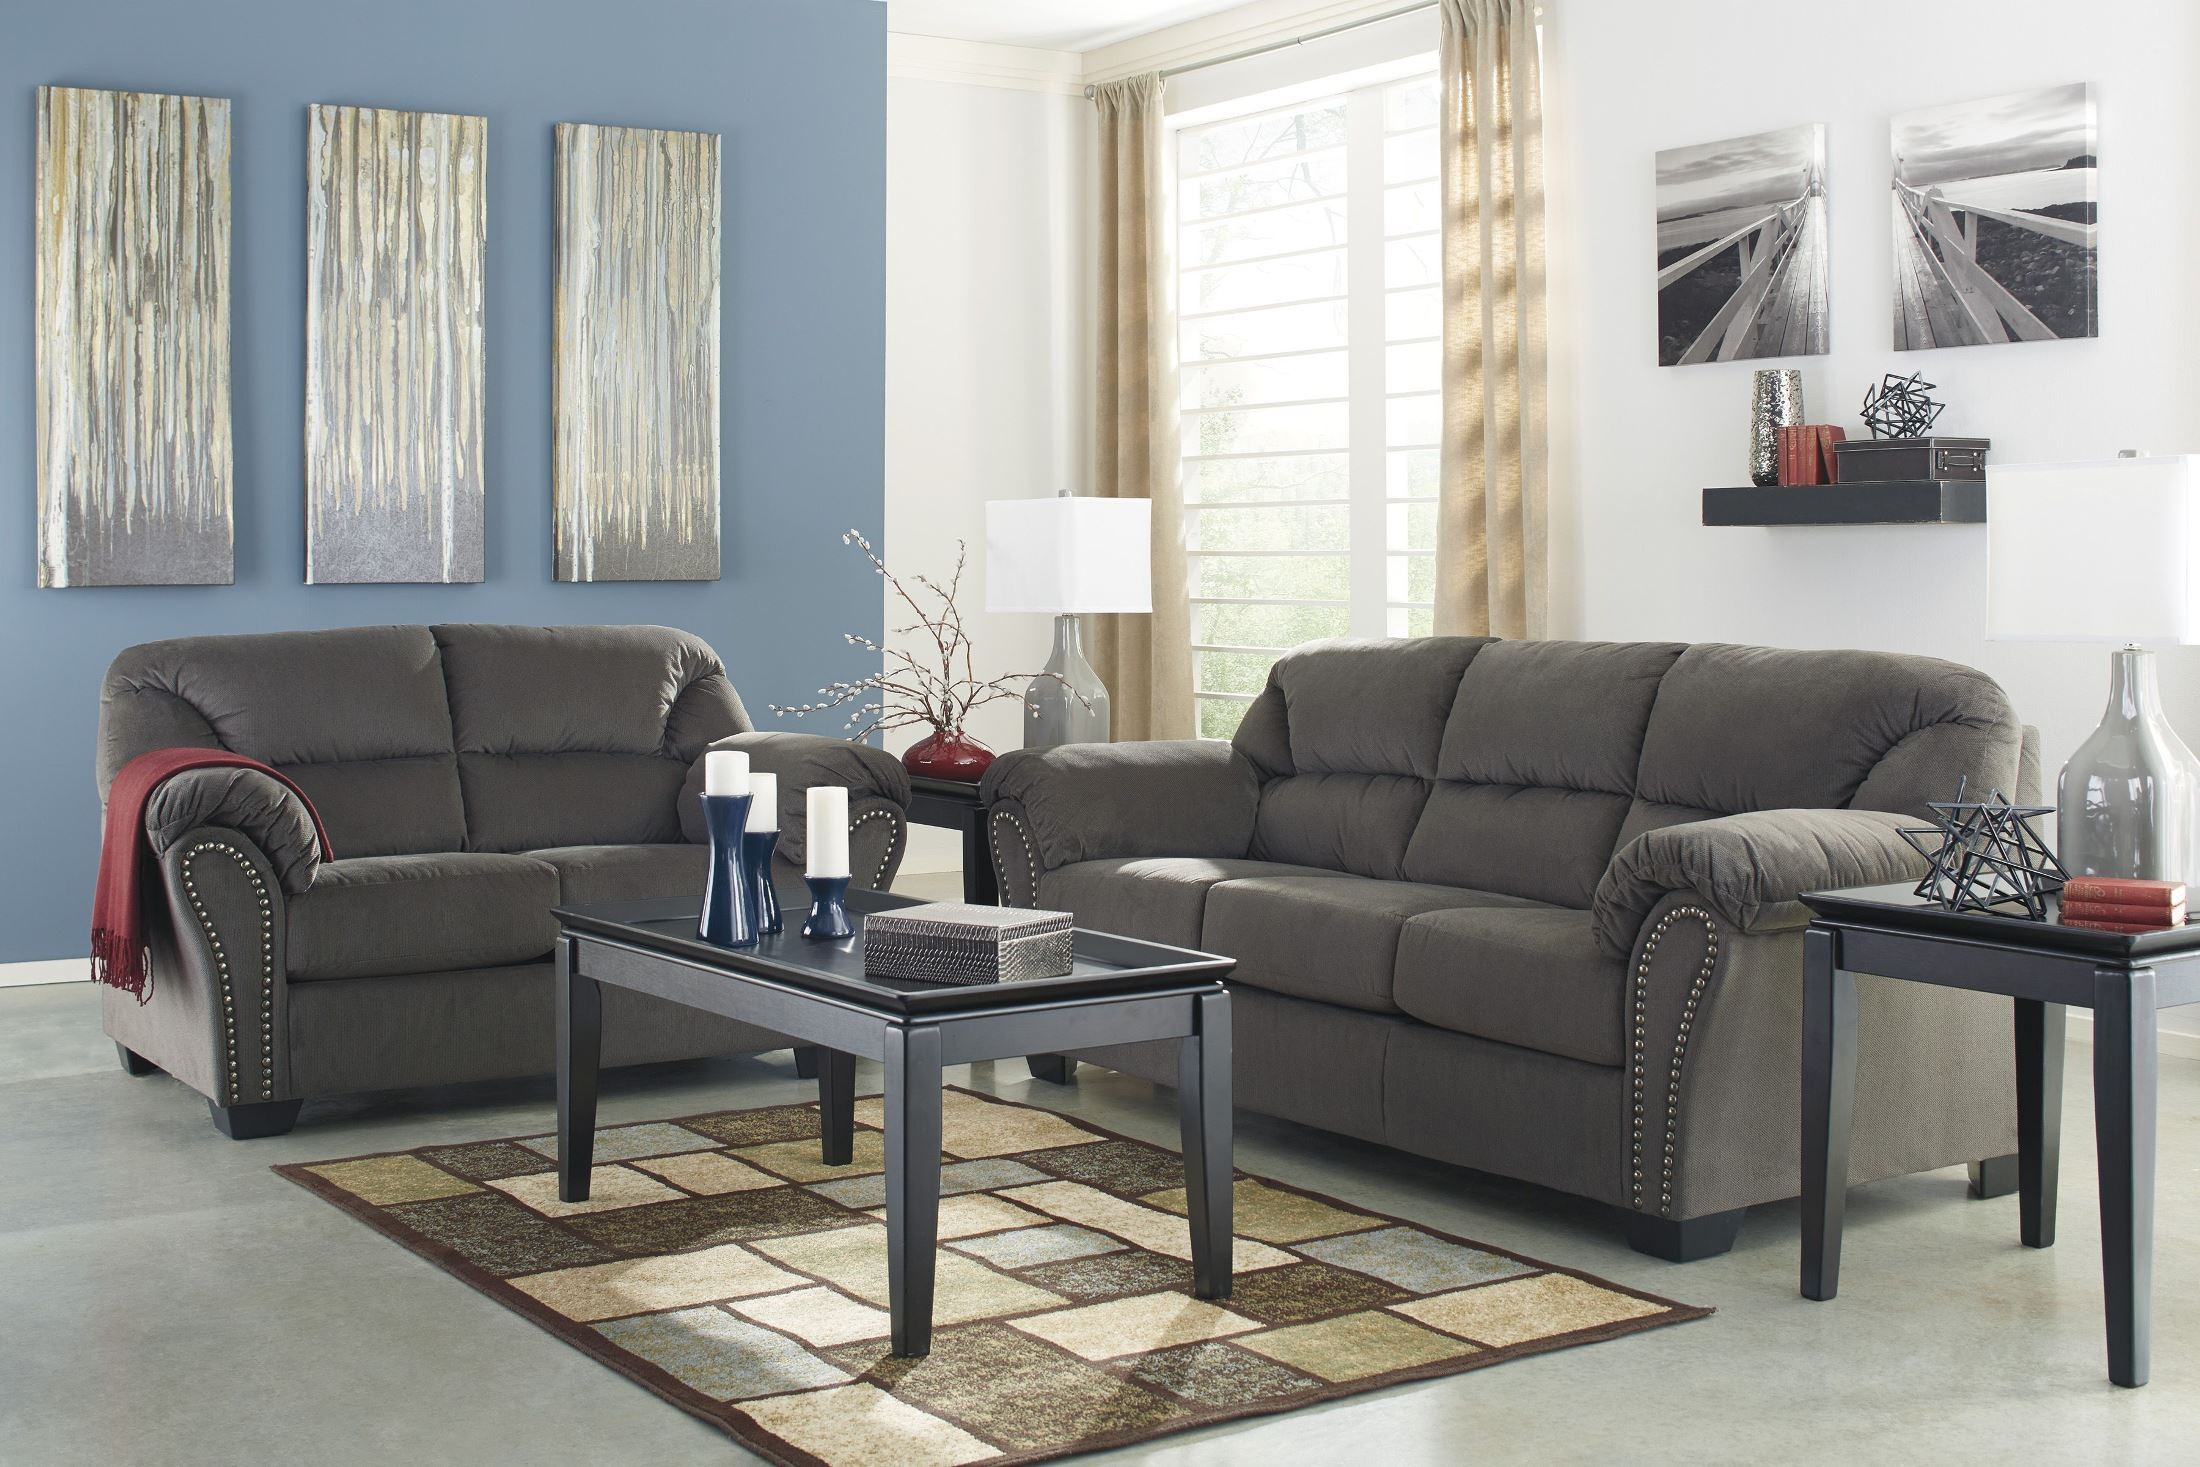 Kinlock Charcoal Loveseat From Ashley 3340035 Coleman